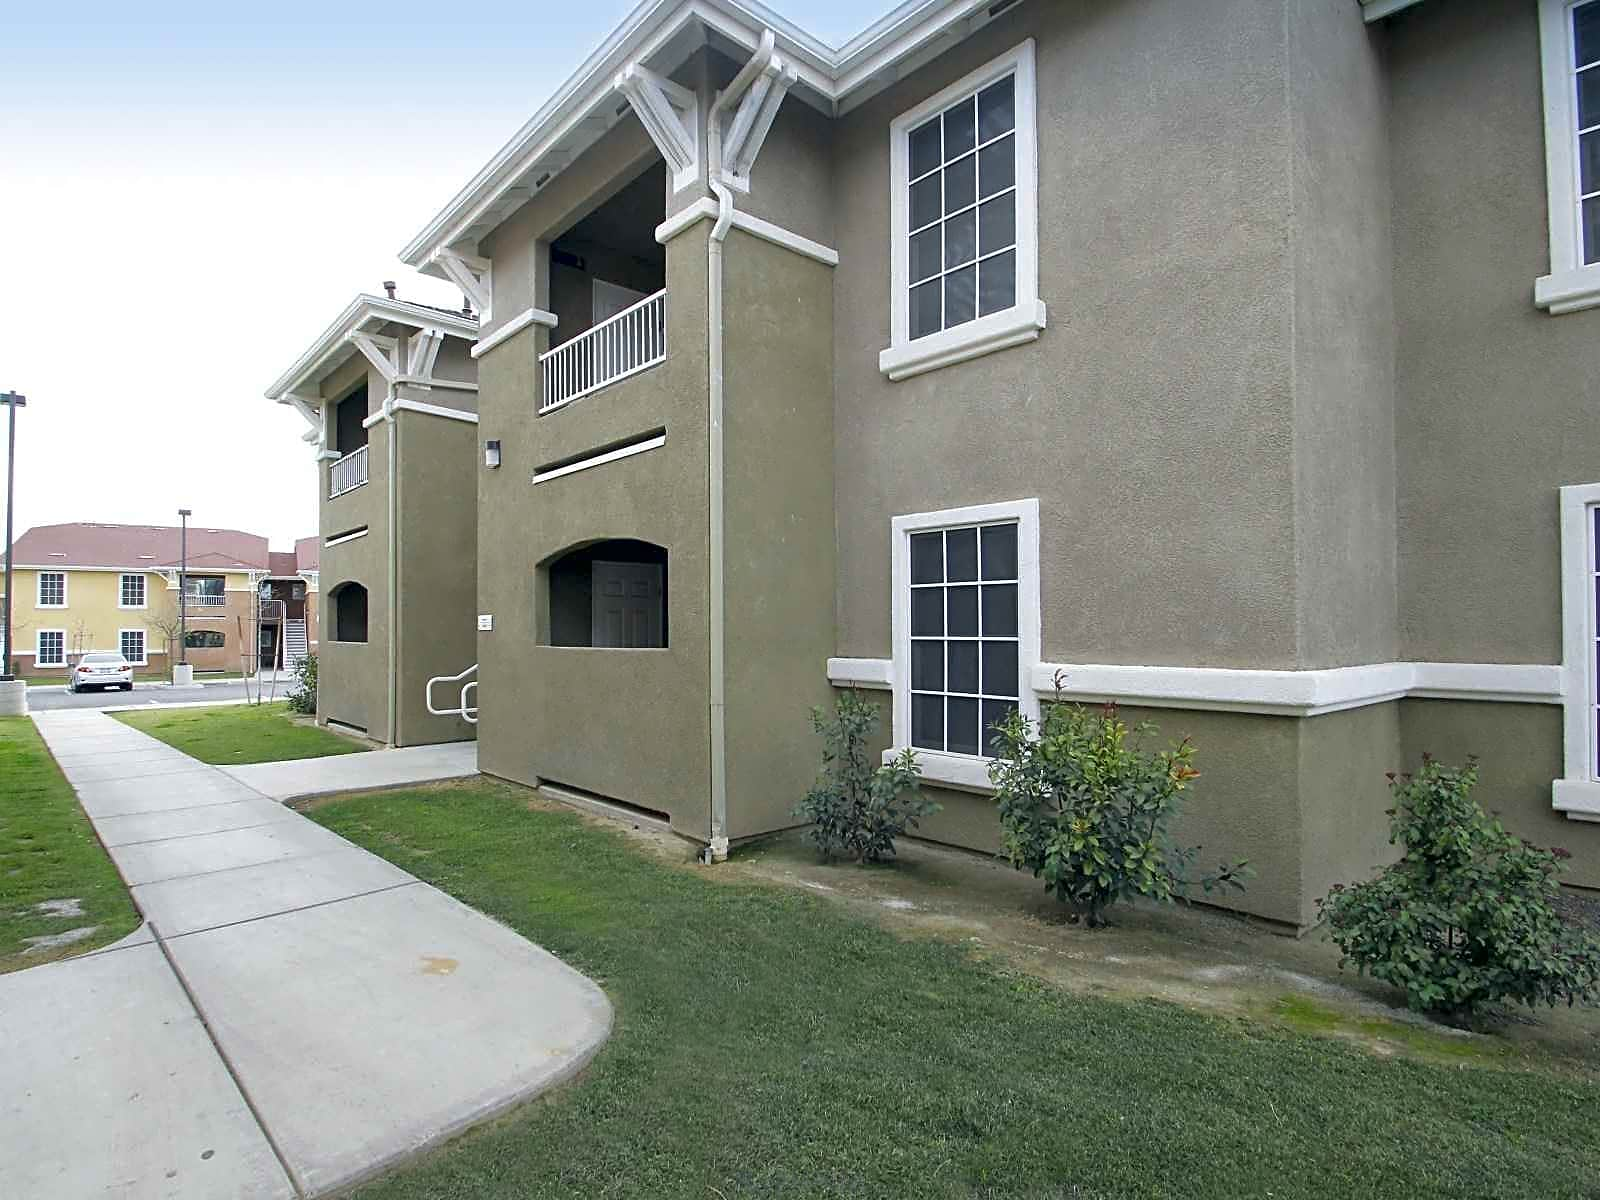 Photo: Bakersfield Apartment for Rent - $474.00 / month; 4 Bd & 2 Ba